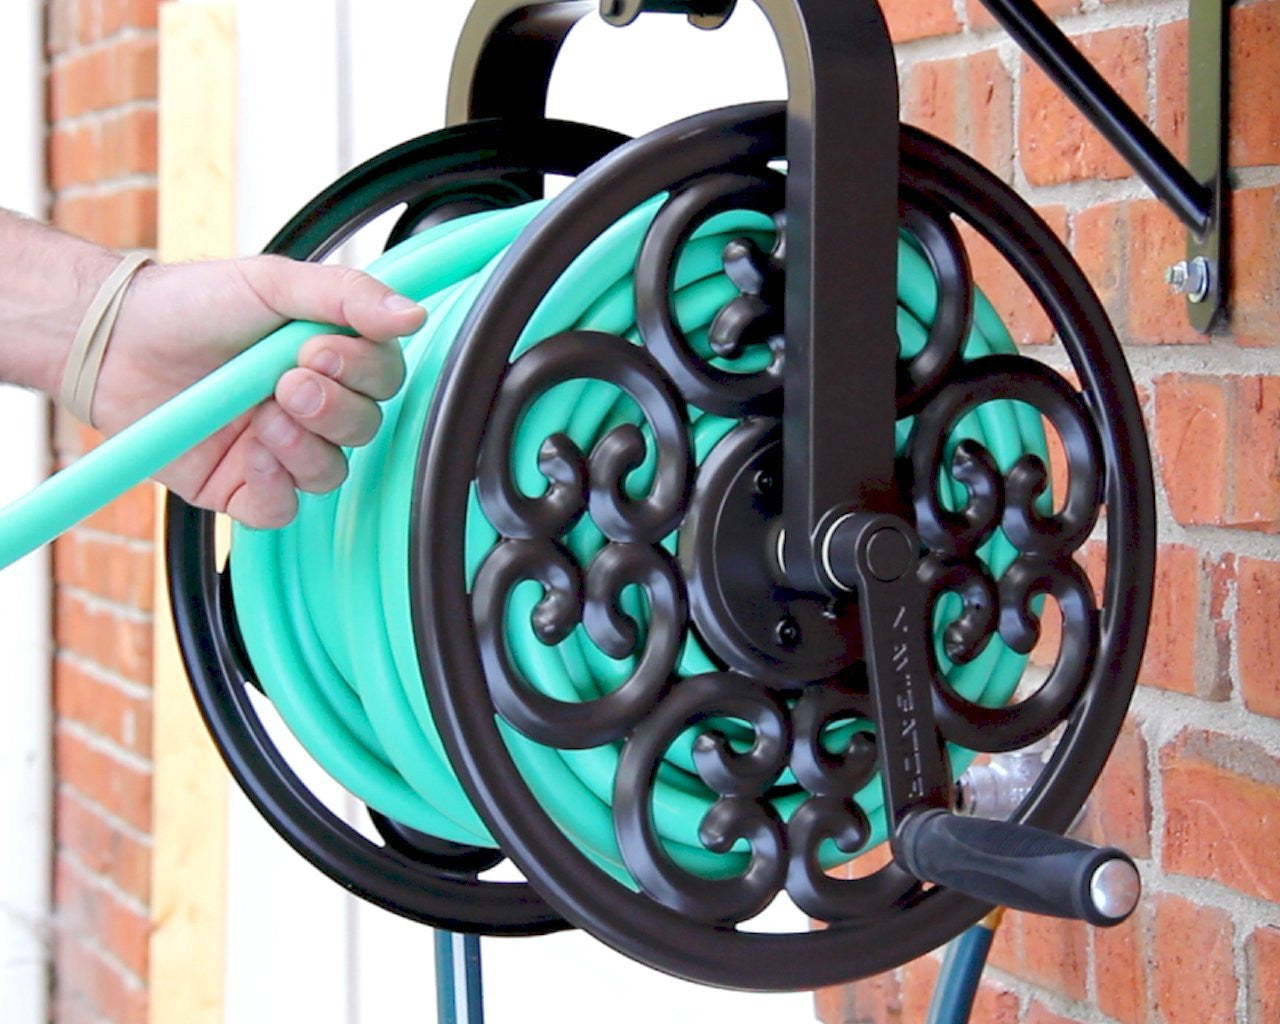 Decorative Swiveling Garden Hose Reel adds Beauty and Function